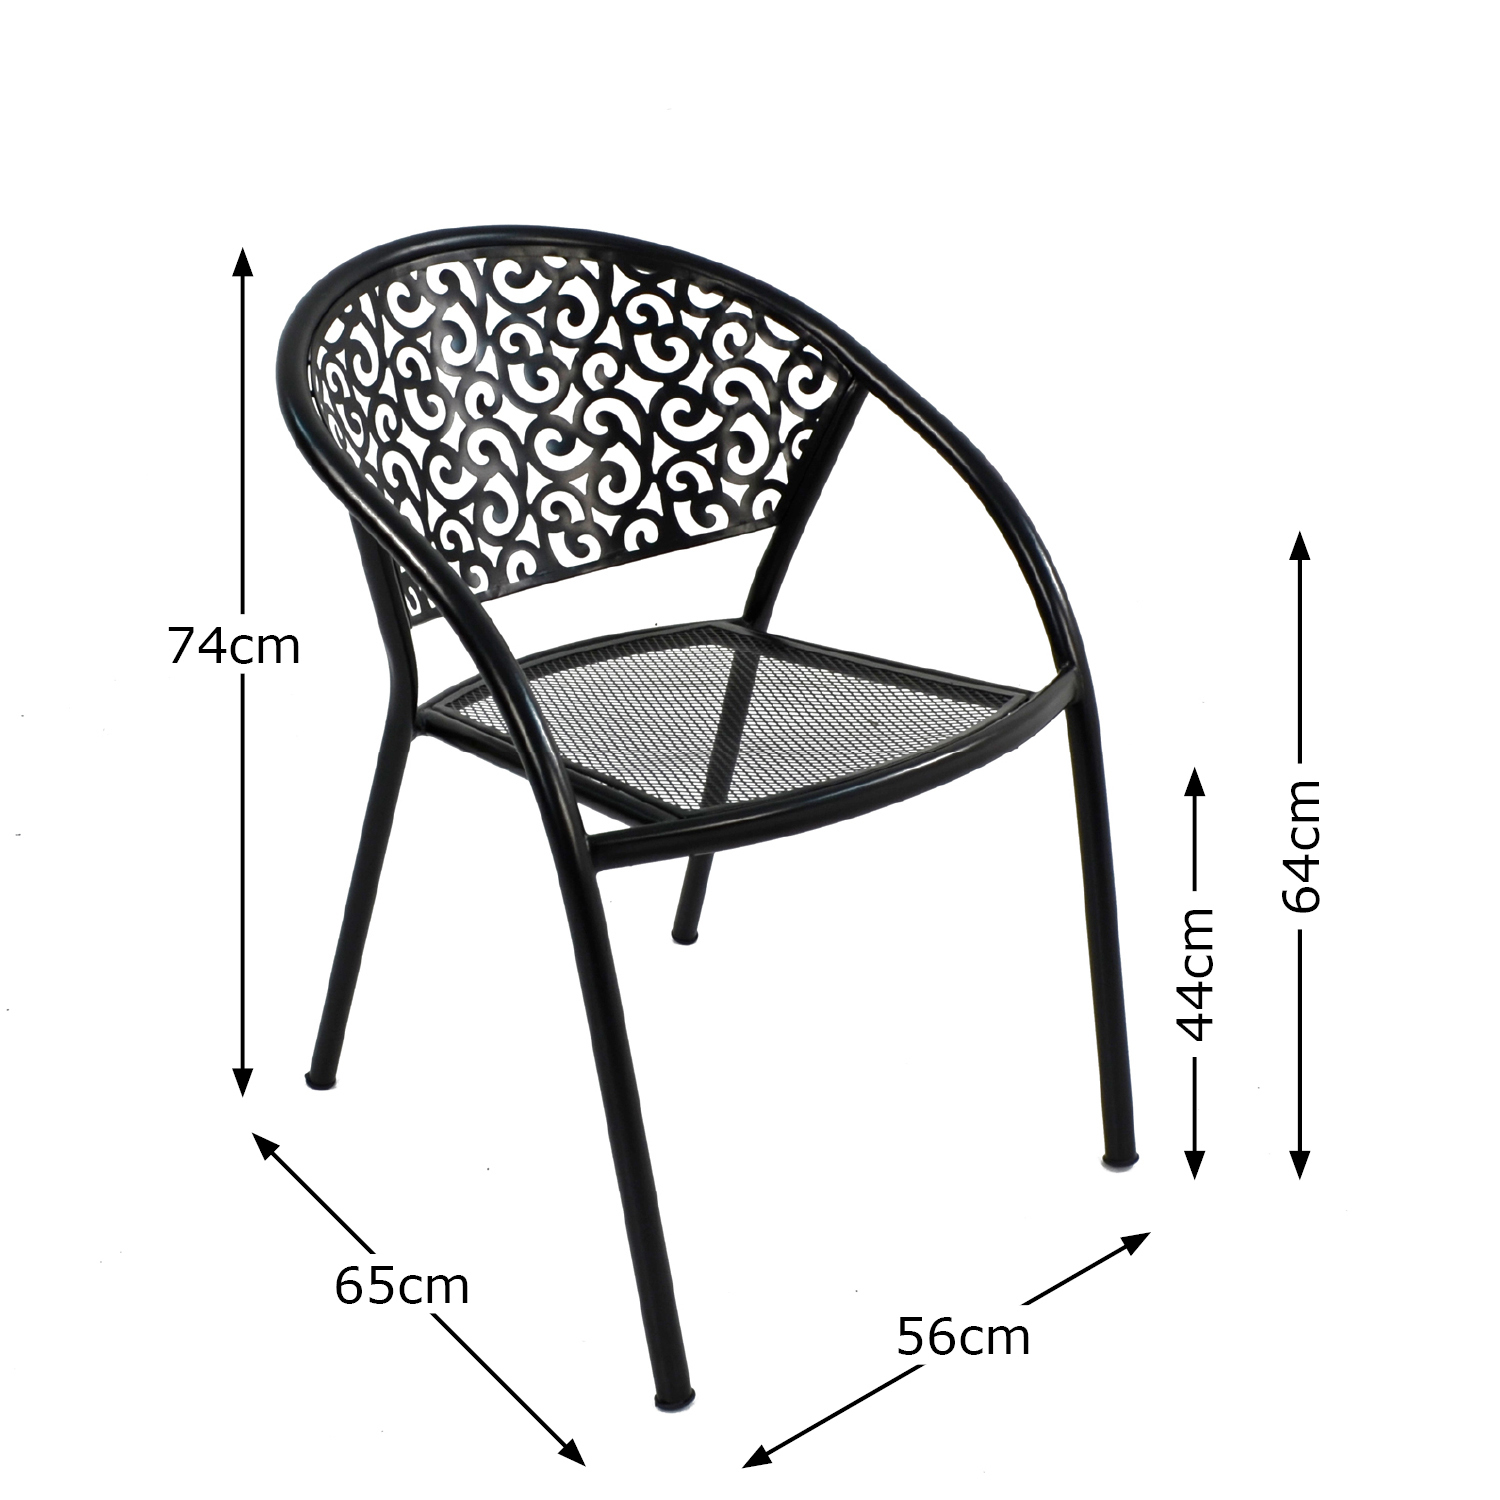 FLORENCE CHAIR DIMENSION MS1